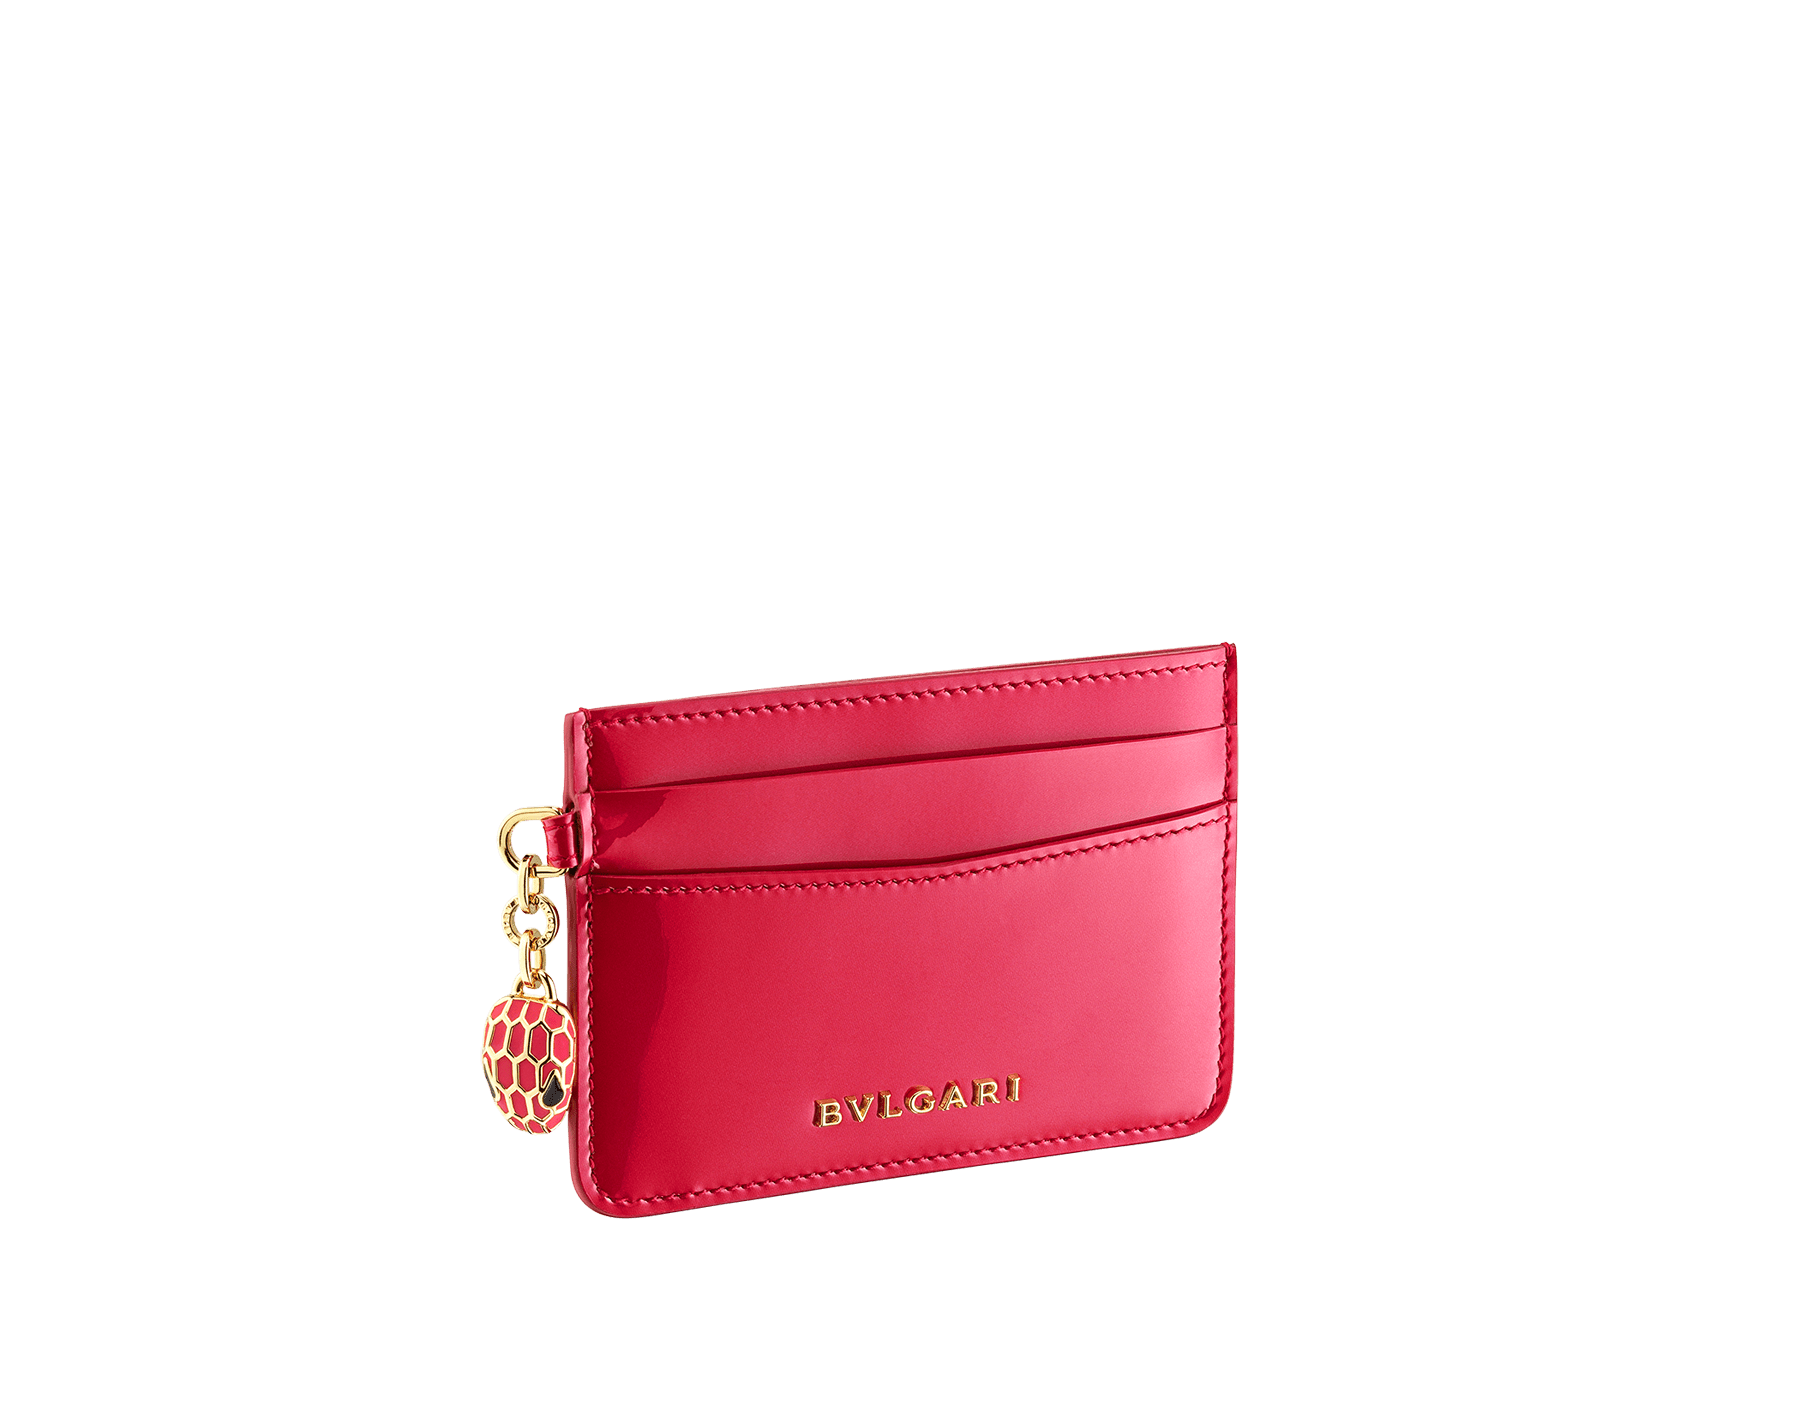 """Serpenti Forever"" card holder in Amaranth Garnet red calf leather with a varnished and pearled effect. Tempting gold plated brass snakehead charm , finished with full matte Amaranth Garnet red enamel, and black enamel eyes. Chinese New Year Special Edition. 290605 image 1"